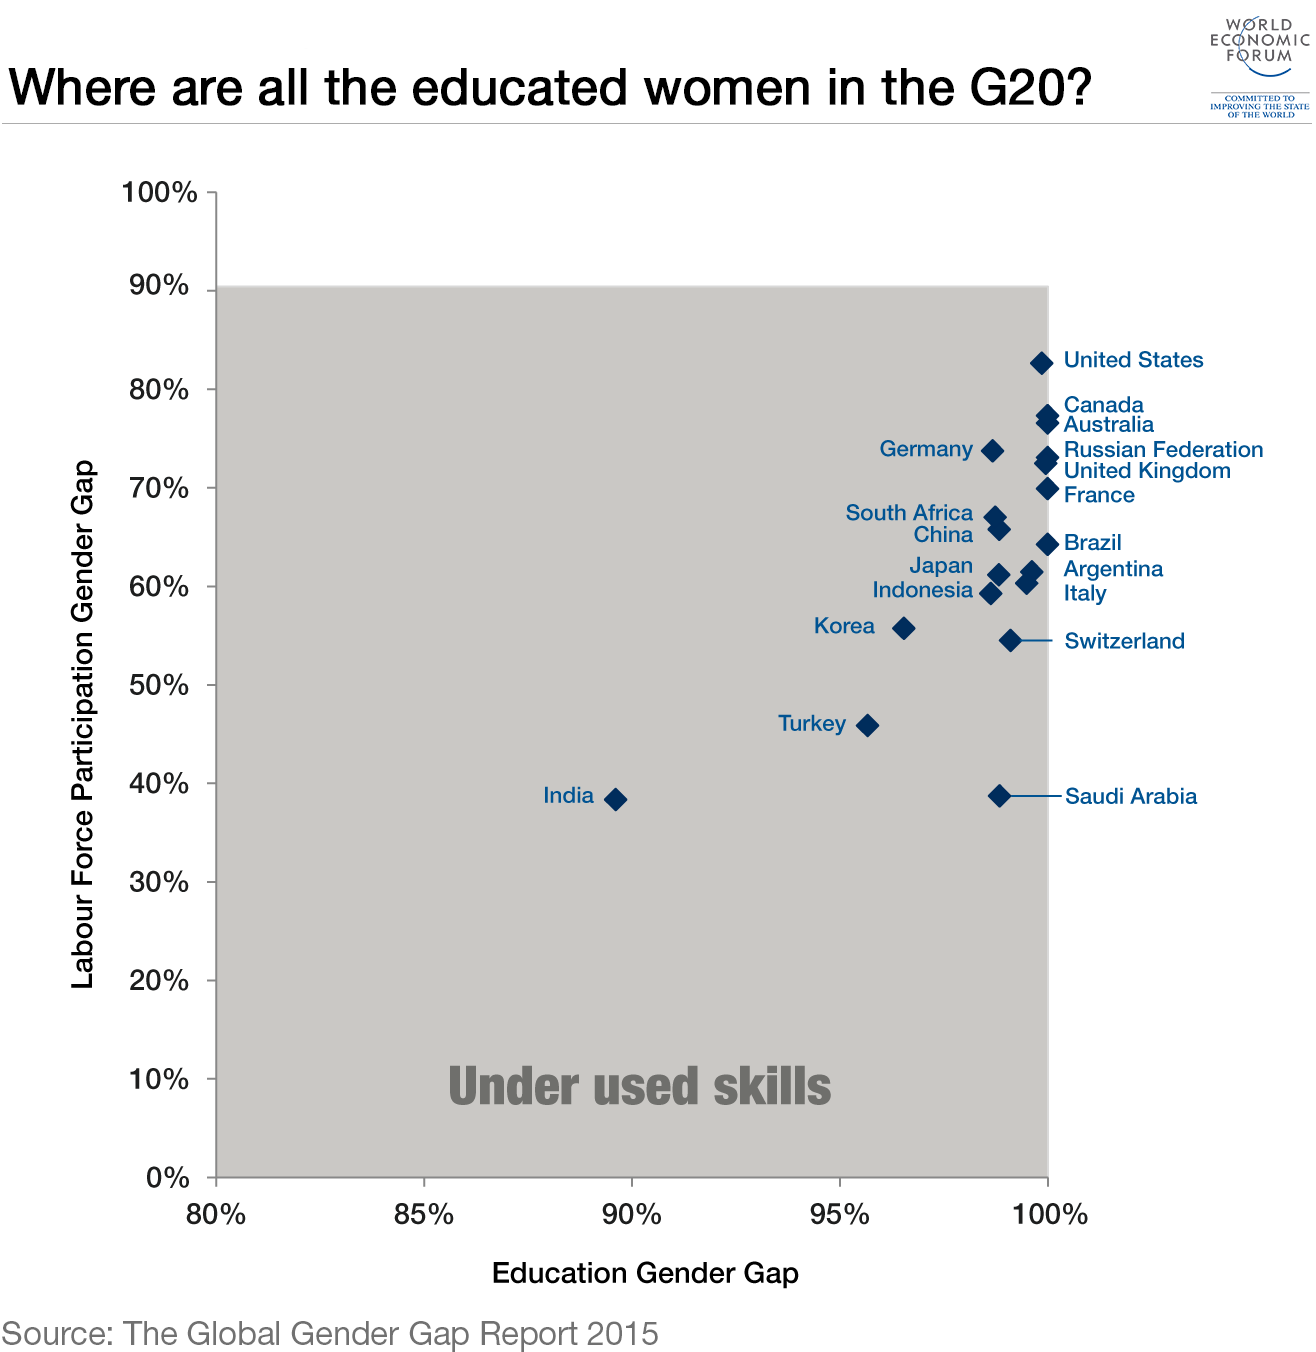 years of the global gender gap report world economic forum 3 educated women g20